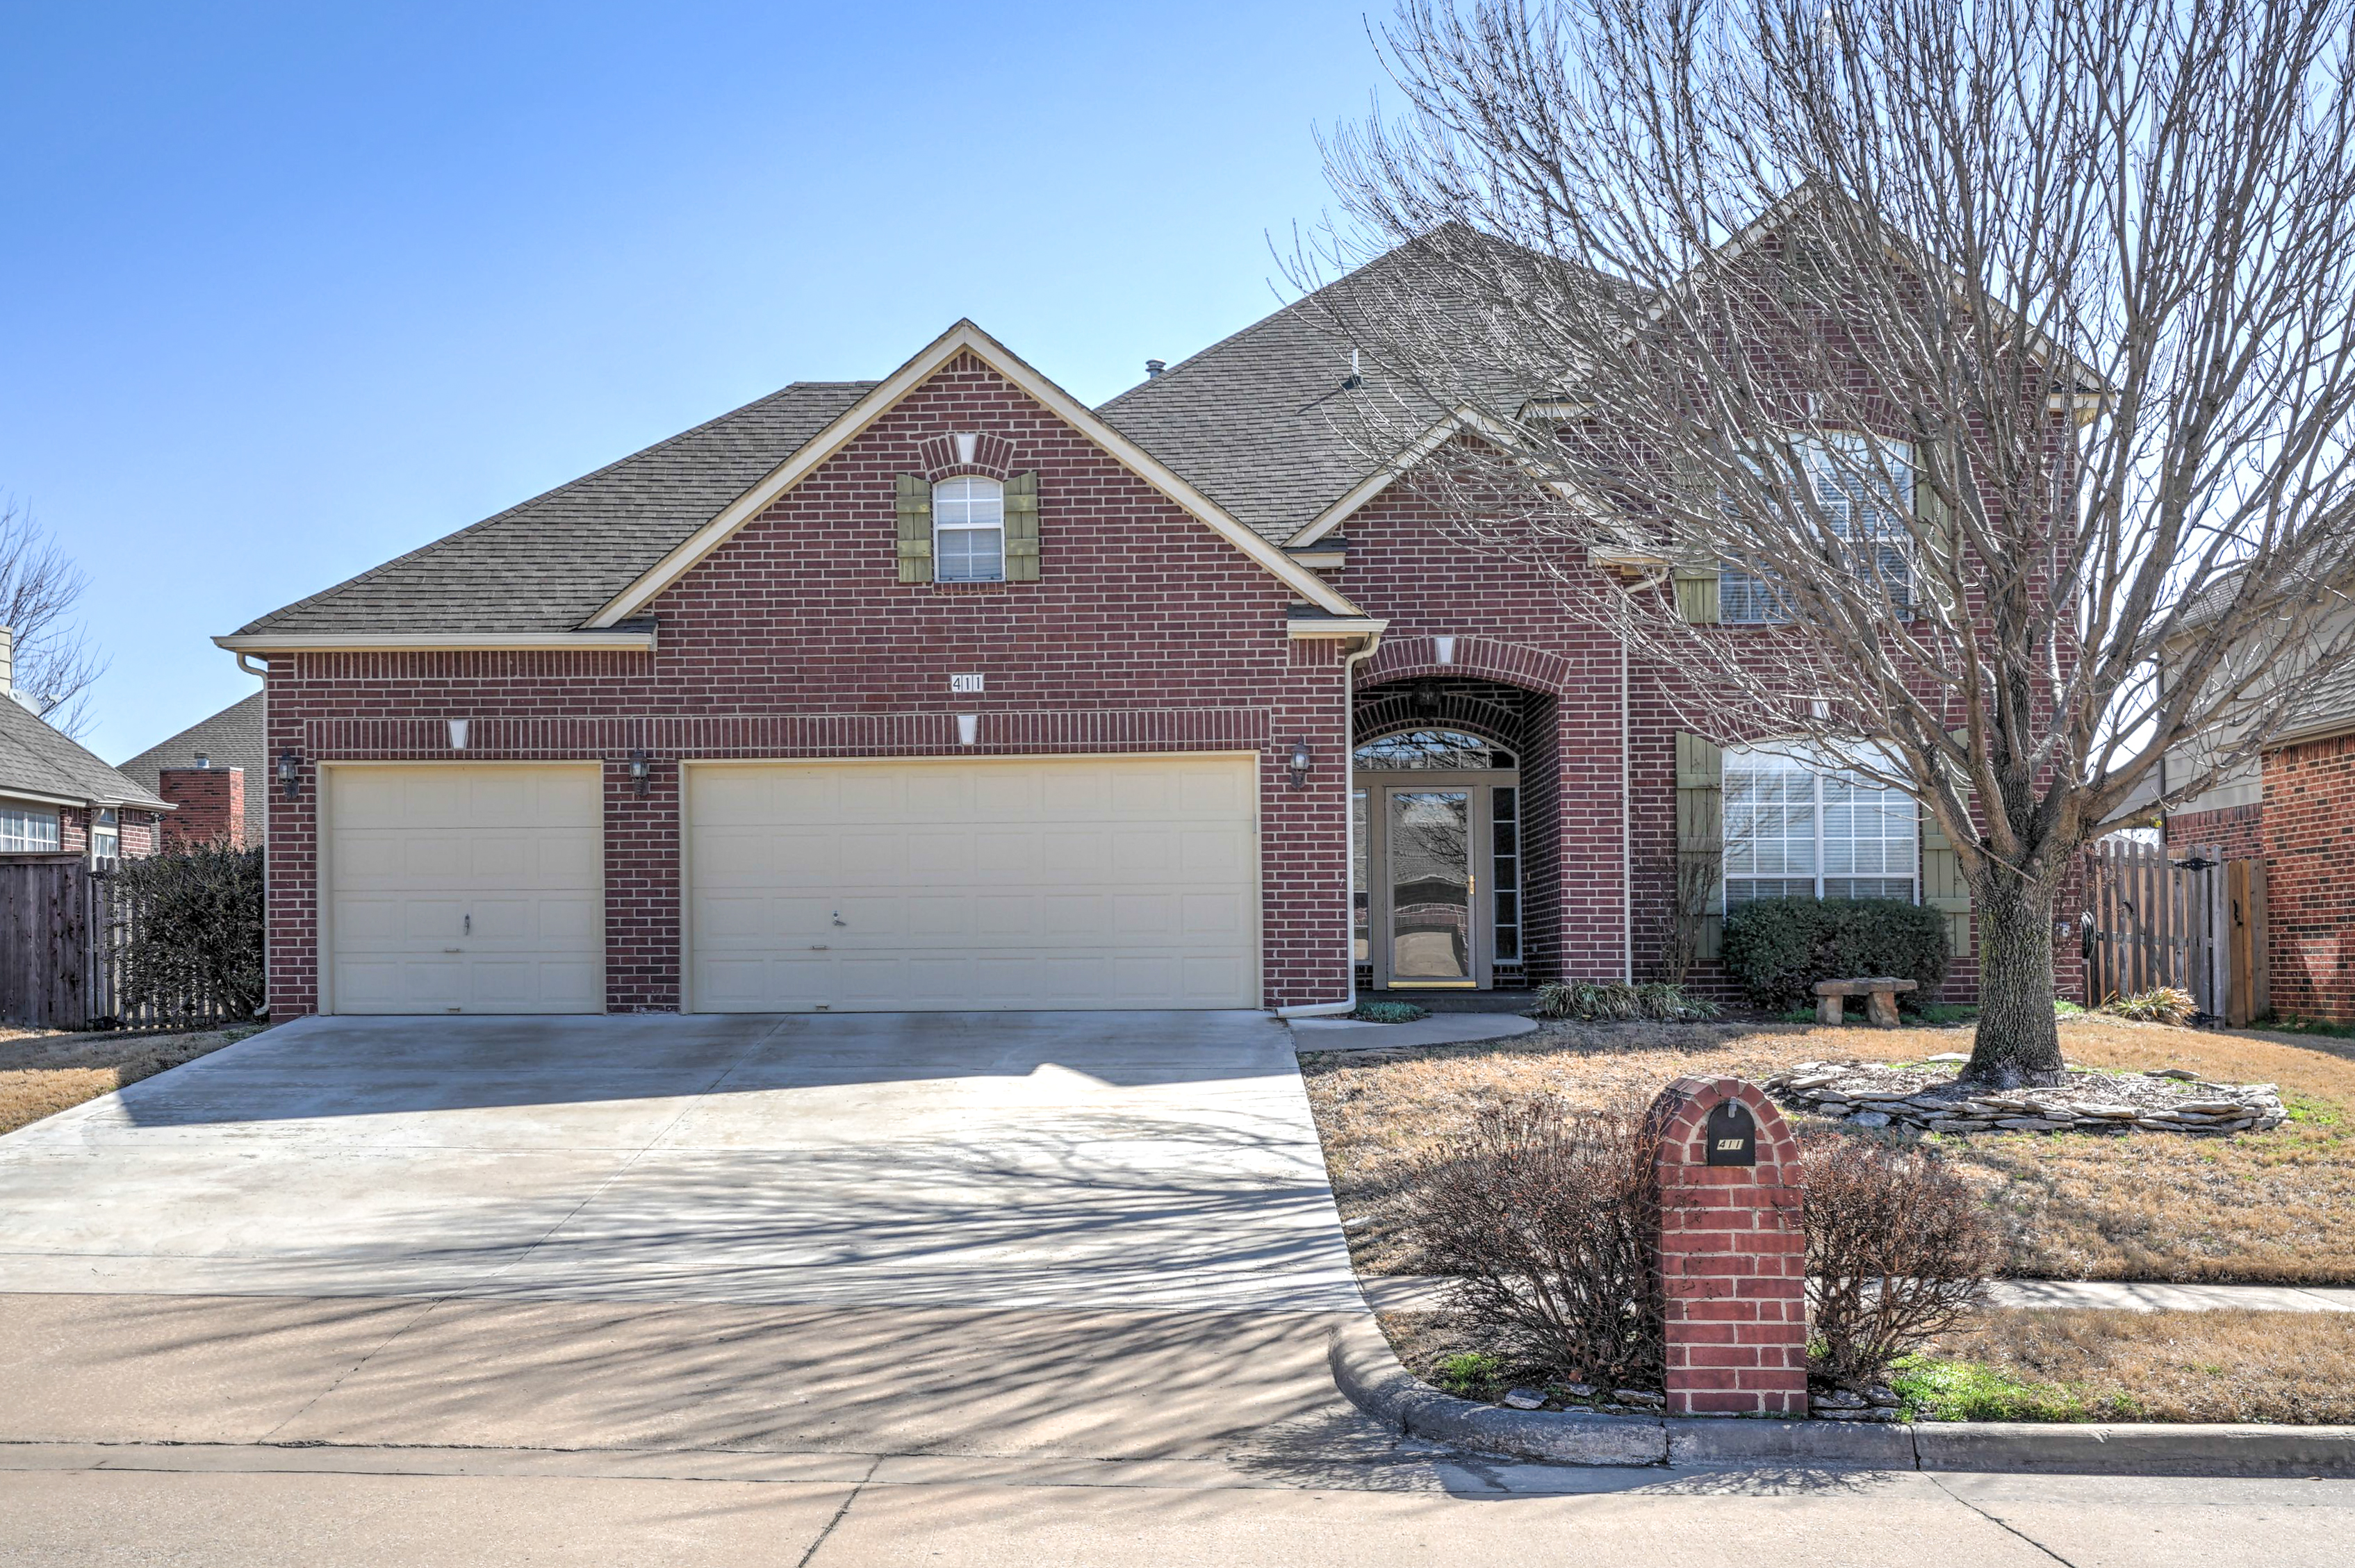 411 N Aster Court Property Photo 1